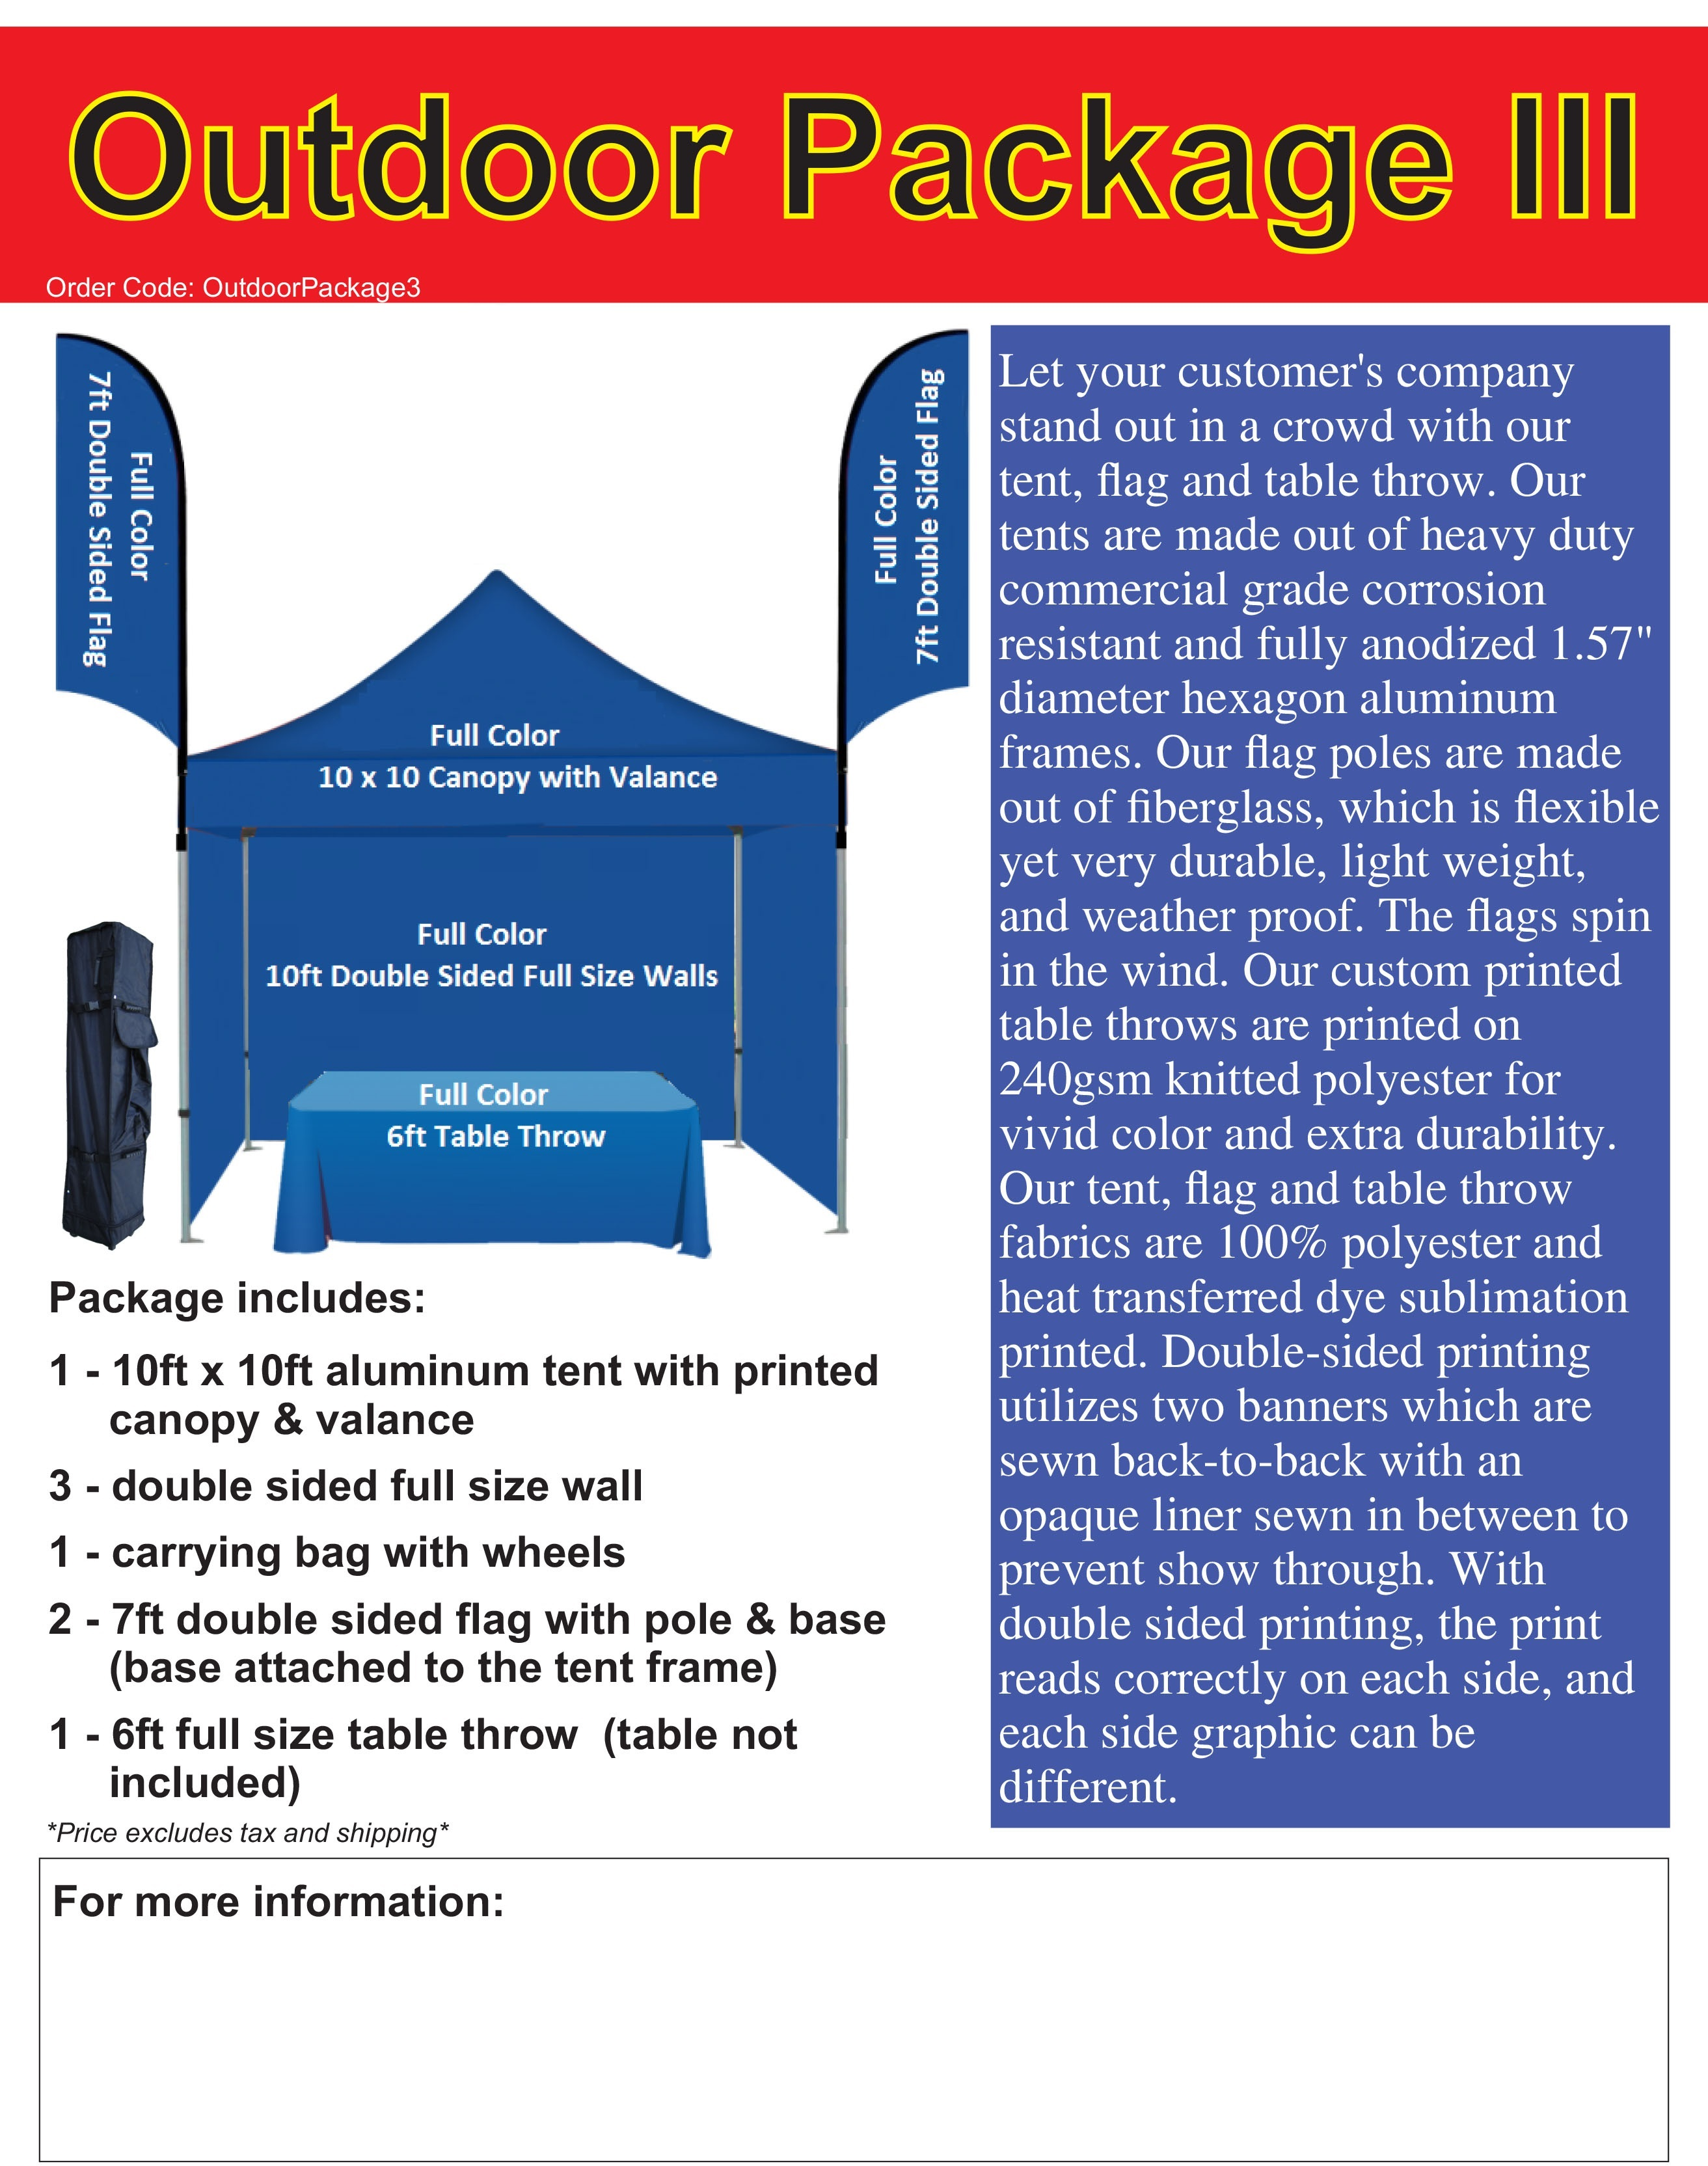 outdoorpackage3.cdr